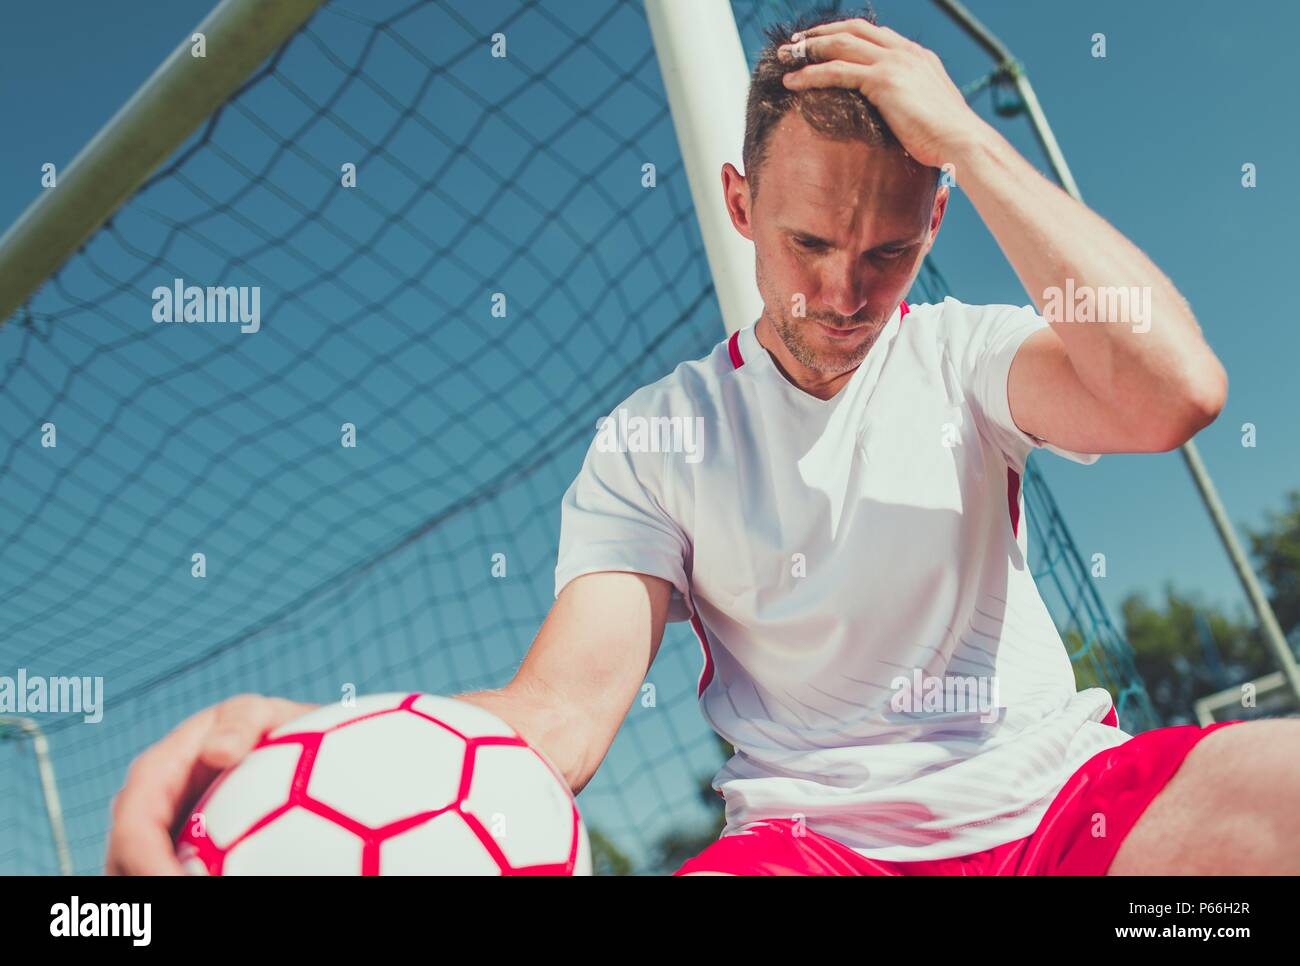 Heartbroken Caucasian Football Player in His 30s with the Ball on the Soccer Field. - Stock Image